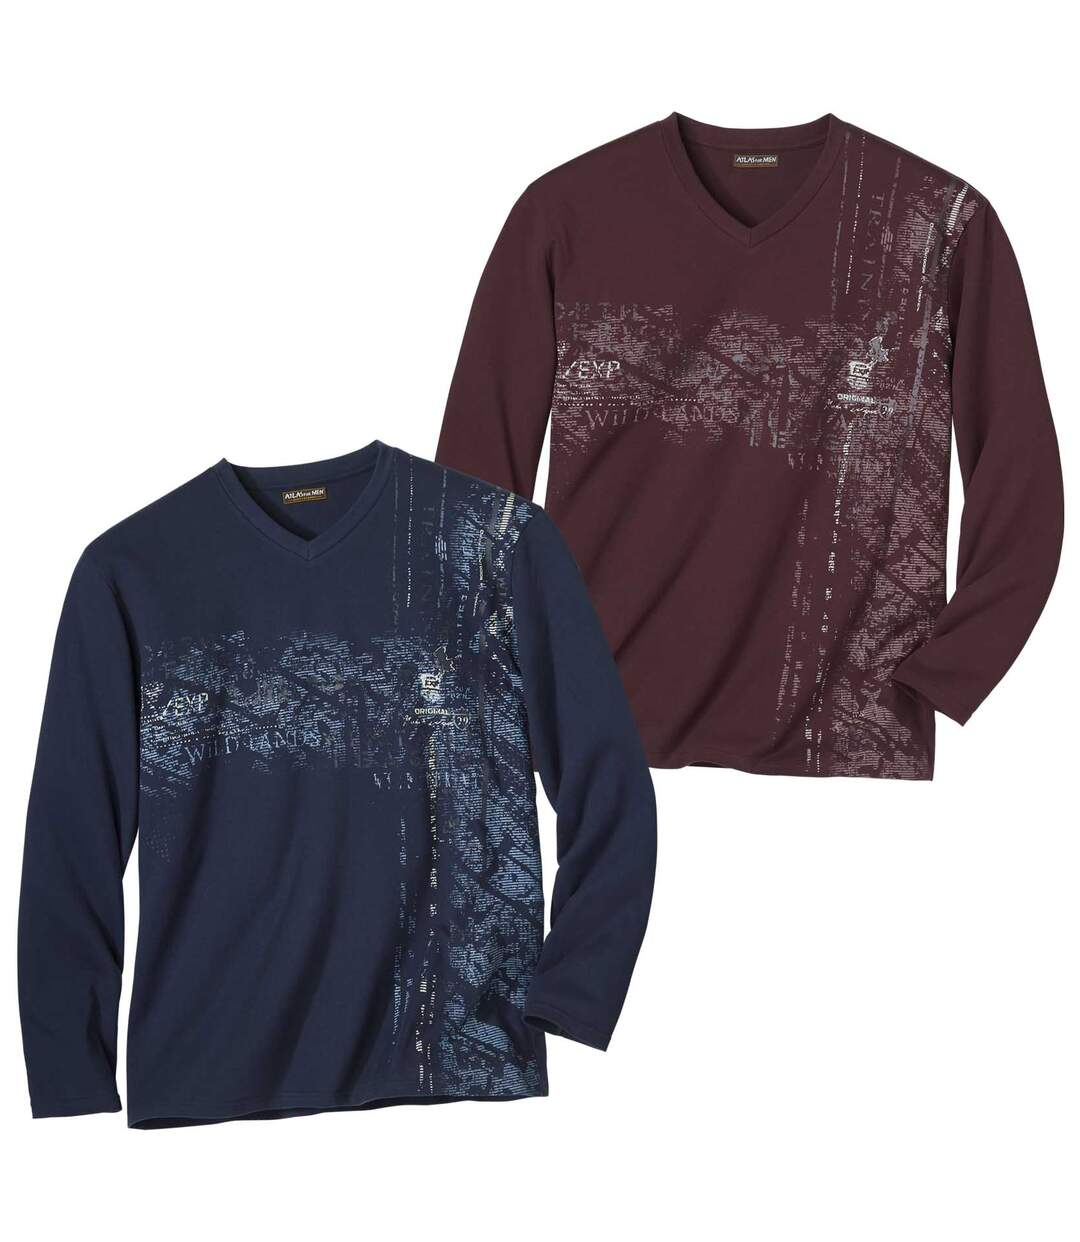 Pack of 2 Men's V-Neck Tops - Navy and Burgundy